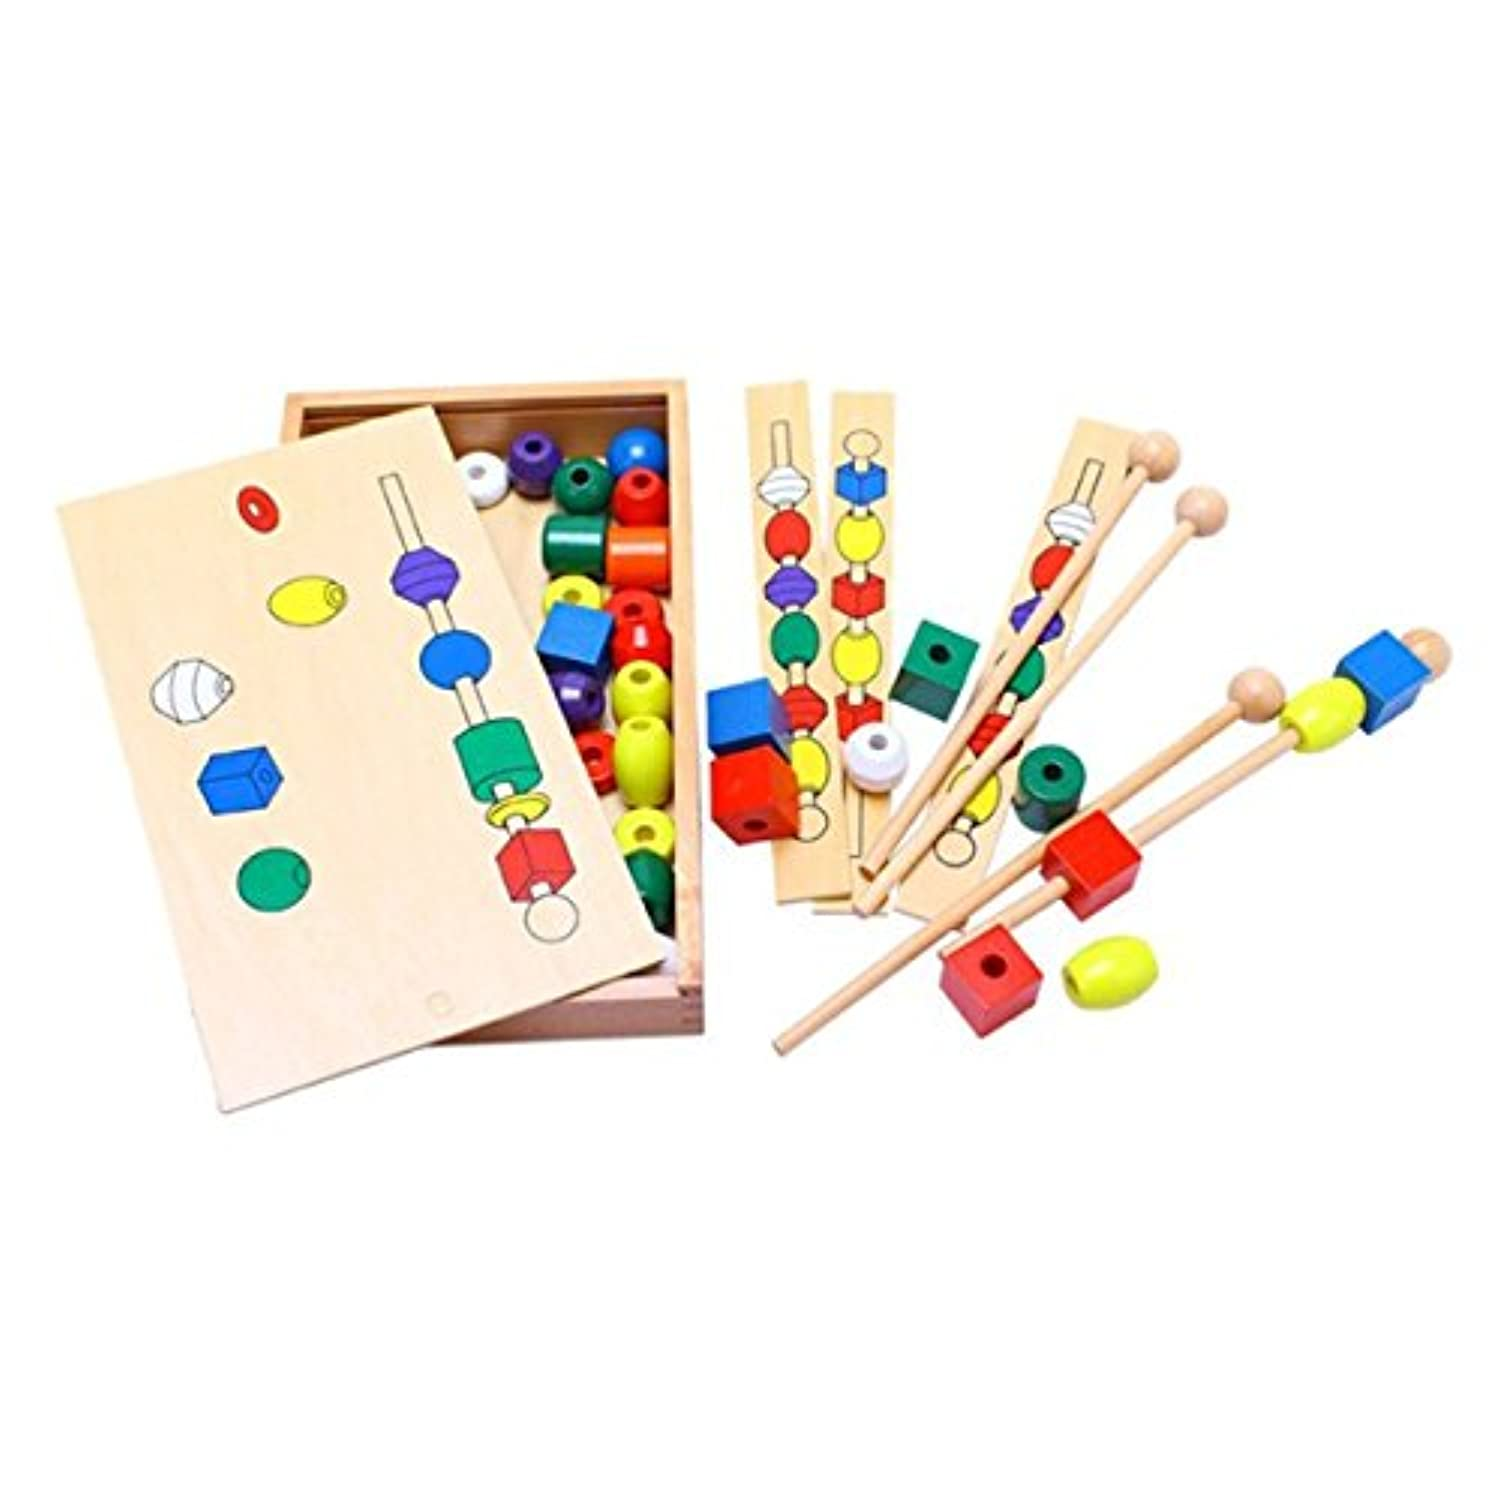 Montessori Bead Sequencing Set Block Toys DIY Classic Toy Kids Teaching Aids Material